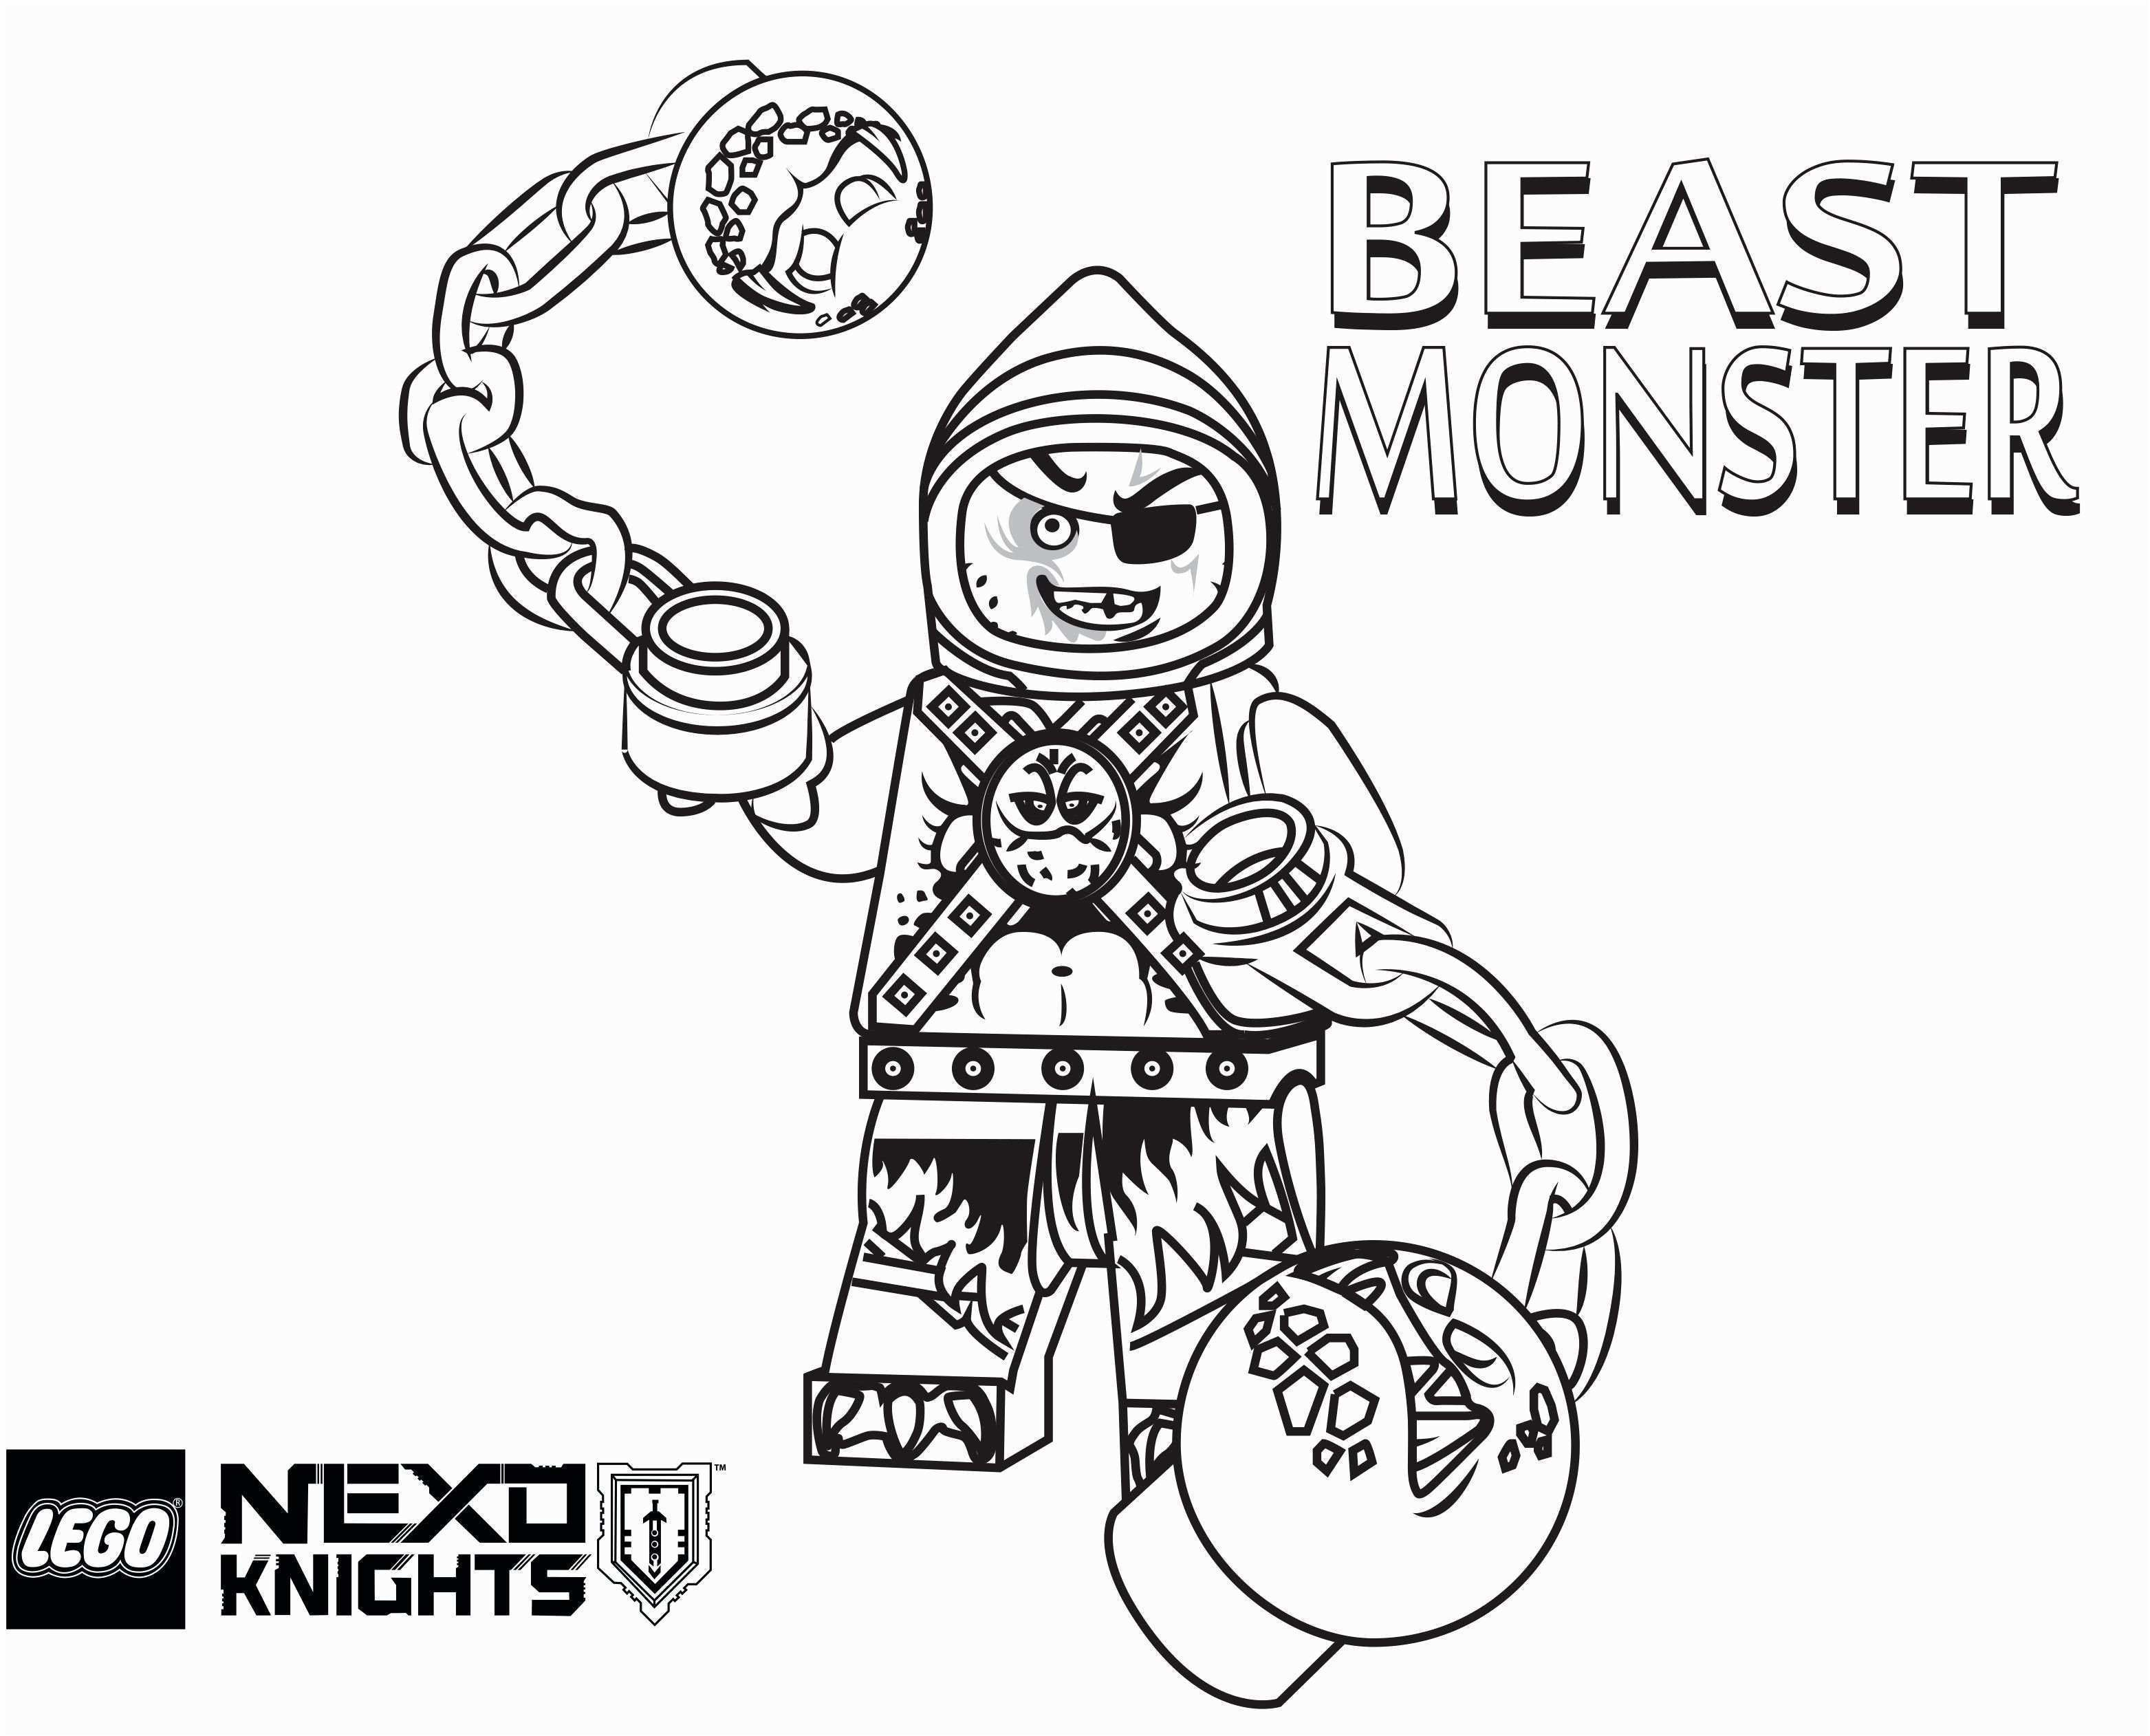 Nexo Knights Coloring Pages Lego Nexo Knight Coloring Pages Elegant Coloriage Lego Nexo Knights Albanysinsanity Com In 2020 Monster Coloring Pages Lego Coloring Pages Lego Coloring